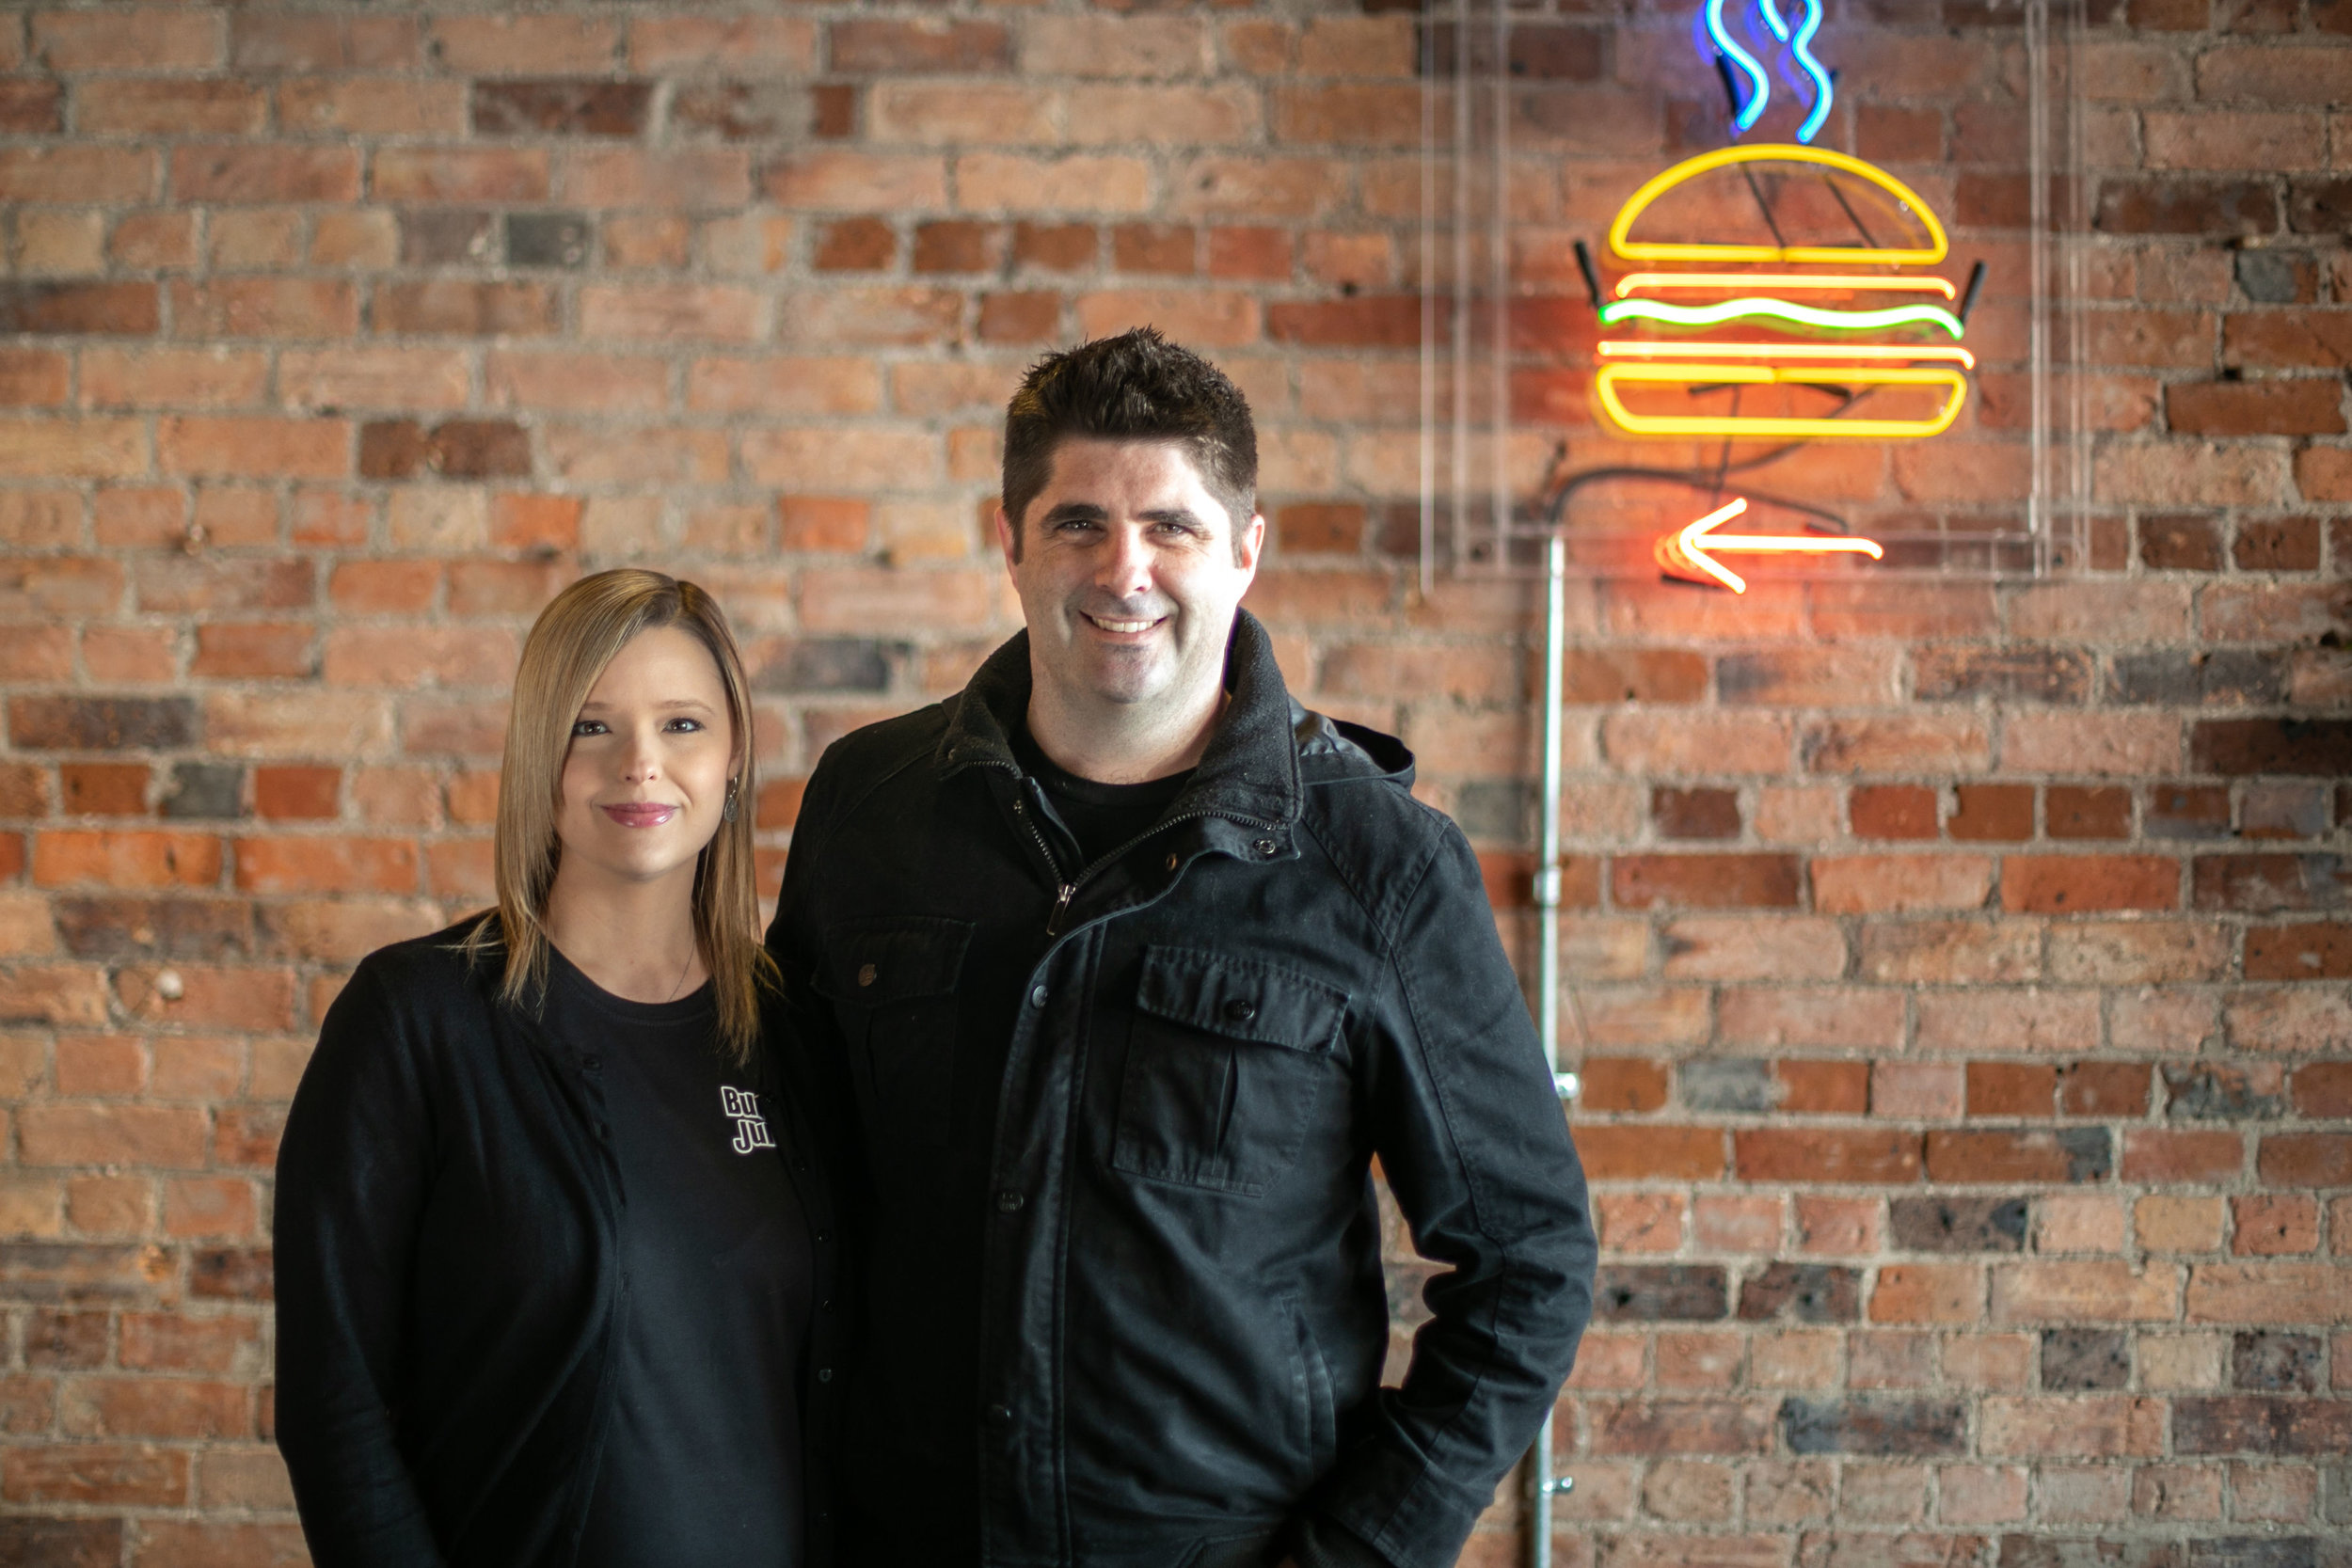 Sharla and Cameron Gallagher, owners of Burger Junkie, serve up north-American style burgers. Image: Melanie de Ruyter for Winterlicous 2019.